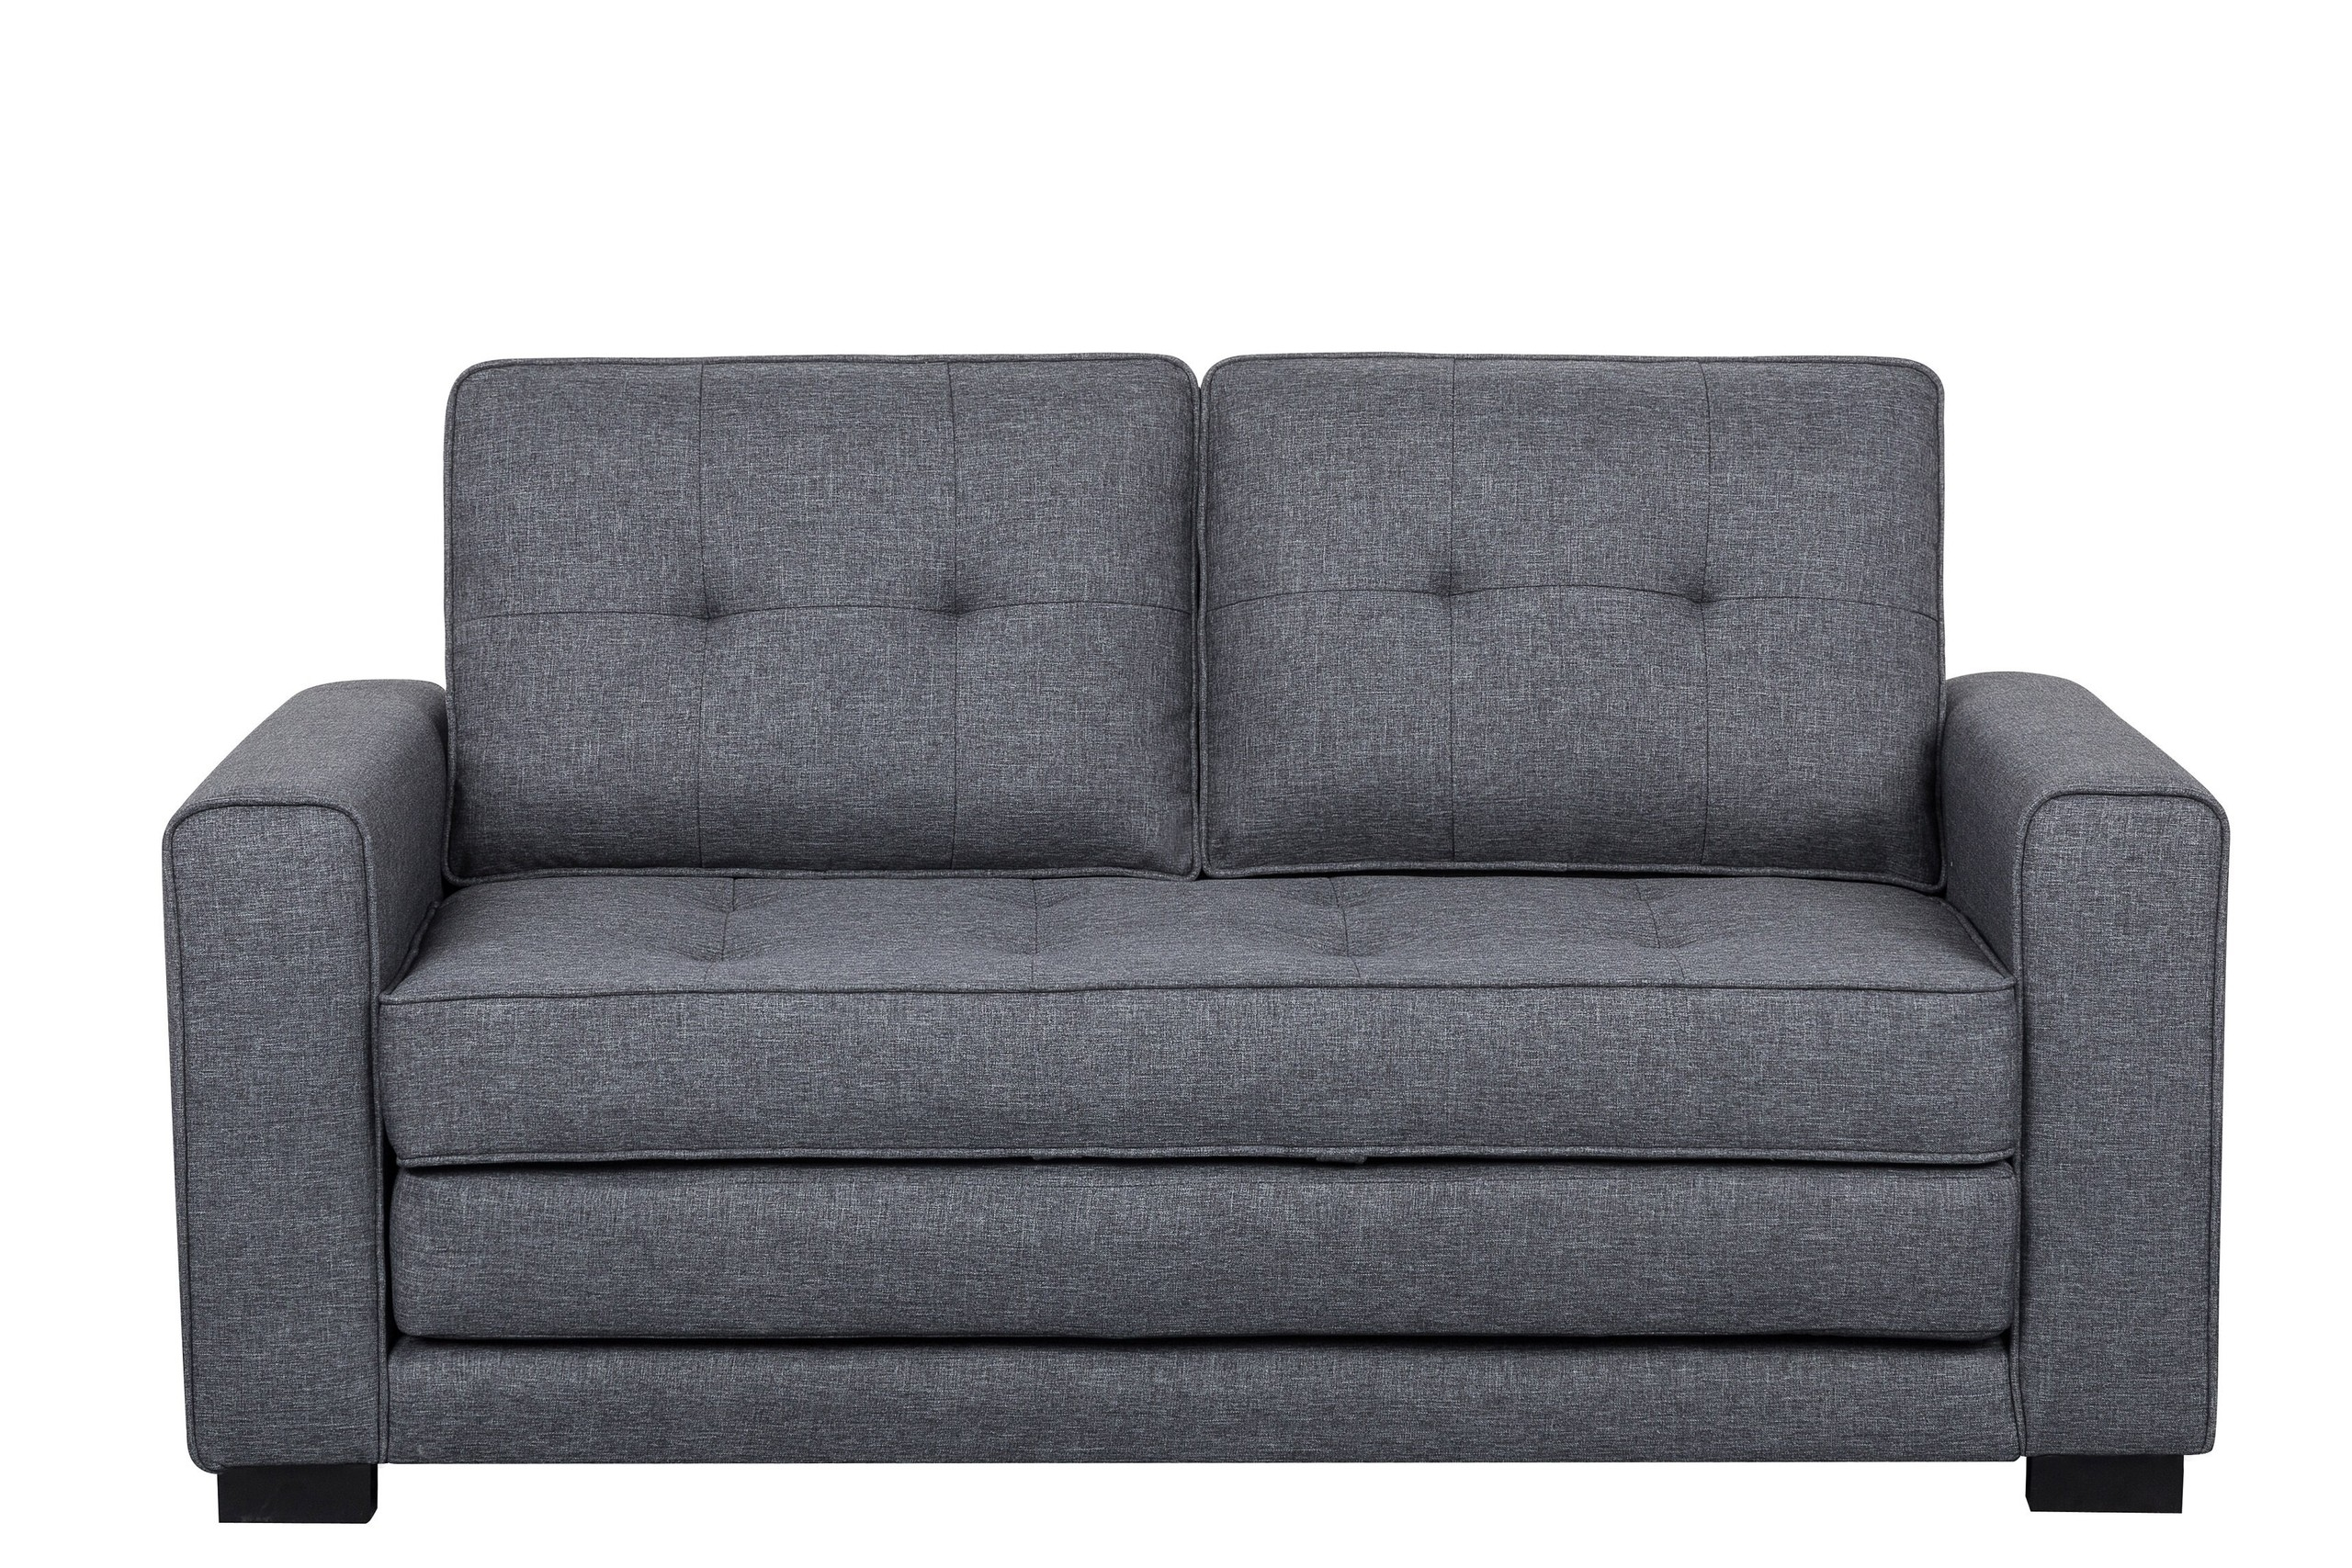 Best Pull Out Couches For Different Style Interiors Foter